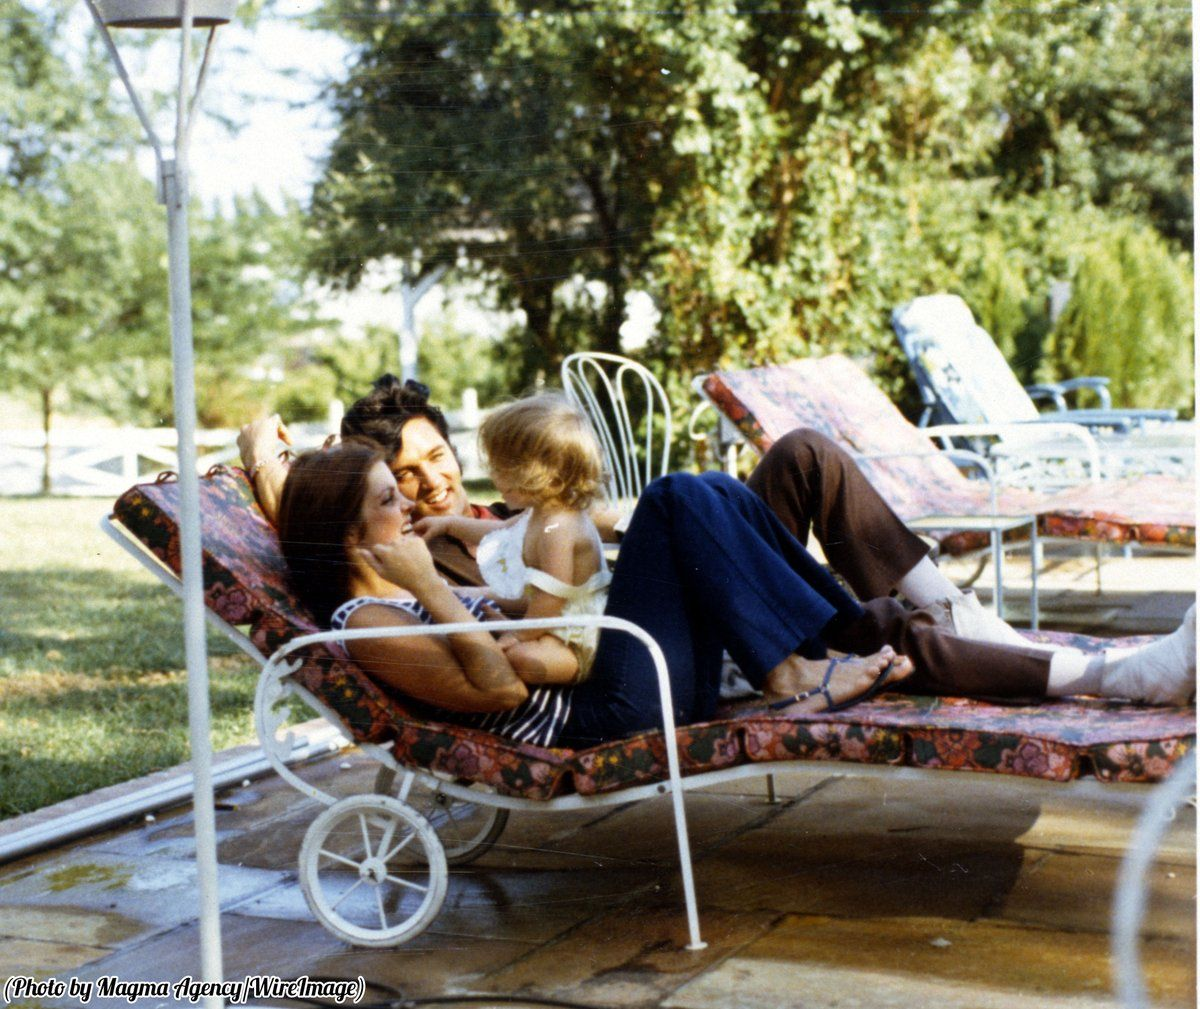 """History In Pictures on Twitter: """"Elvis, Priscilla, and Lisa Marie Presley relaxing at home, 1968. https://t.co/LynVM45hWt"""""""